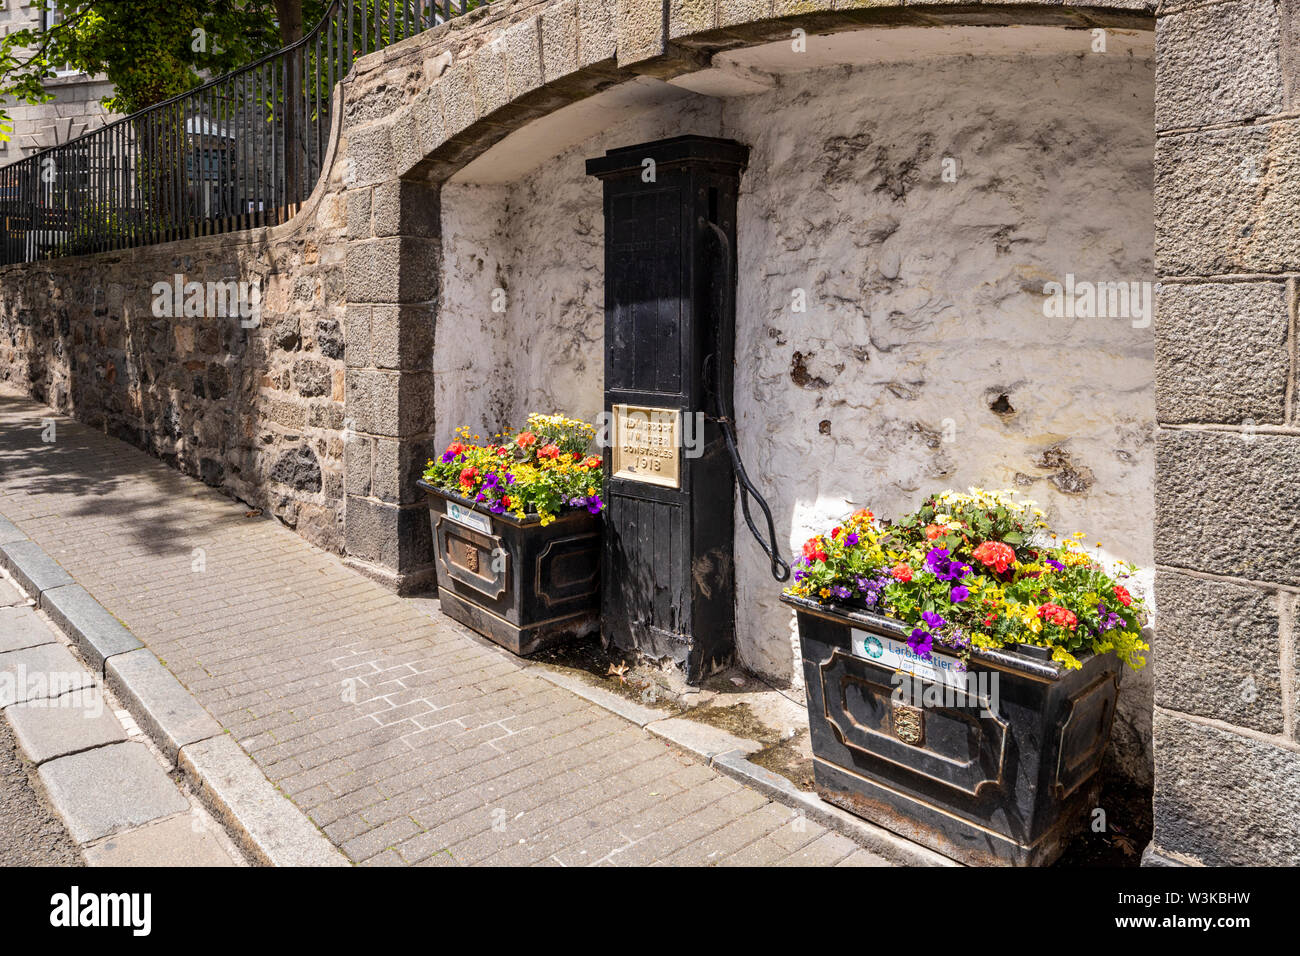 Floral displays beside an old public water pump dated 1918 in The Pollett under La Plaiderie, St Peter Port, Guernsey, Channel Islands UK Stock Photo